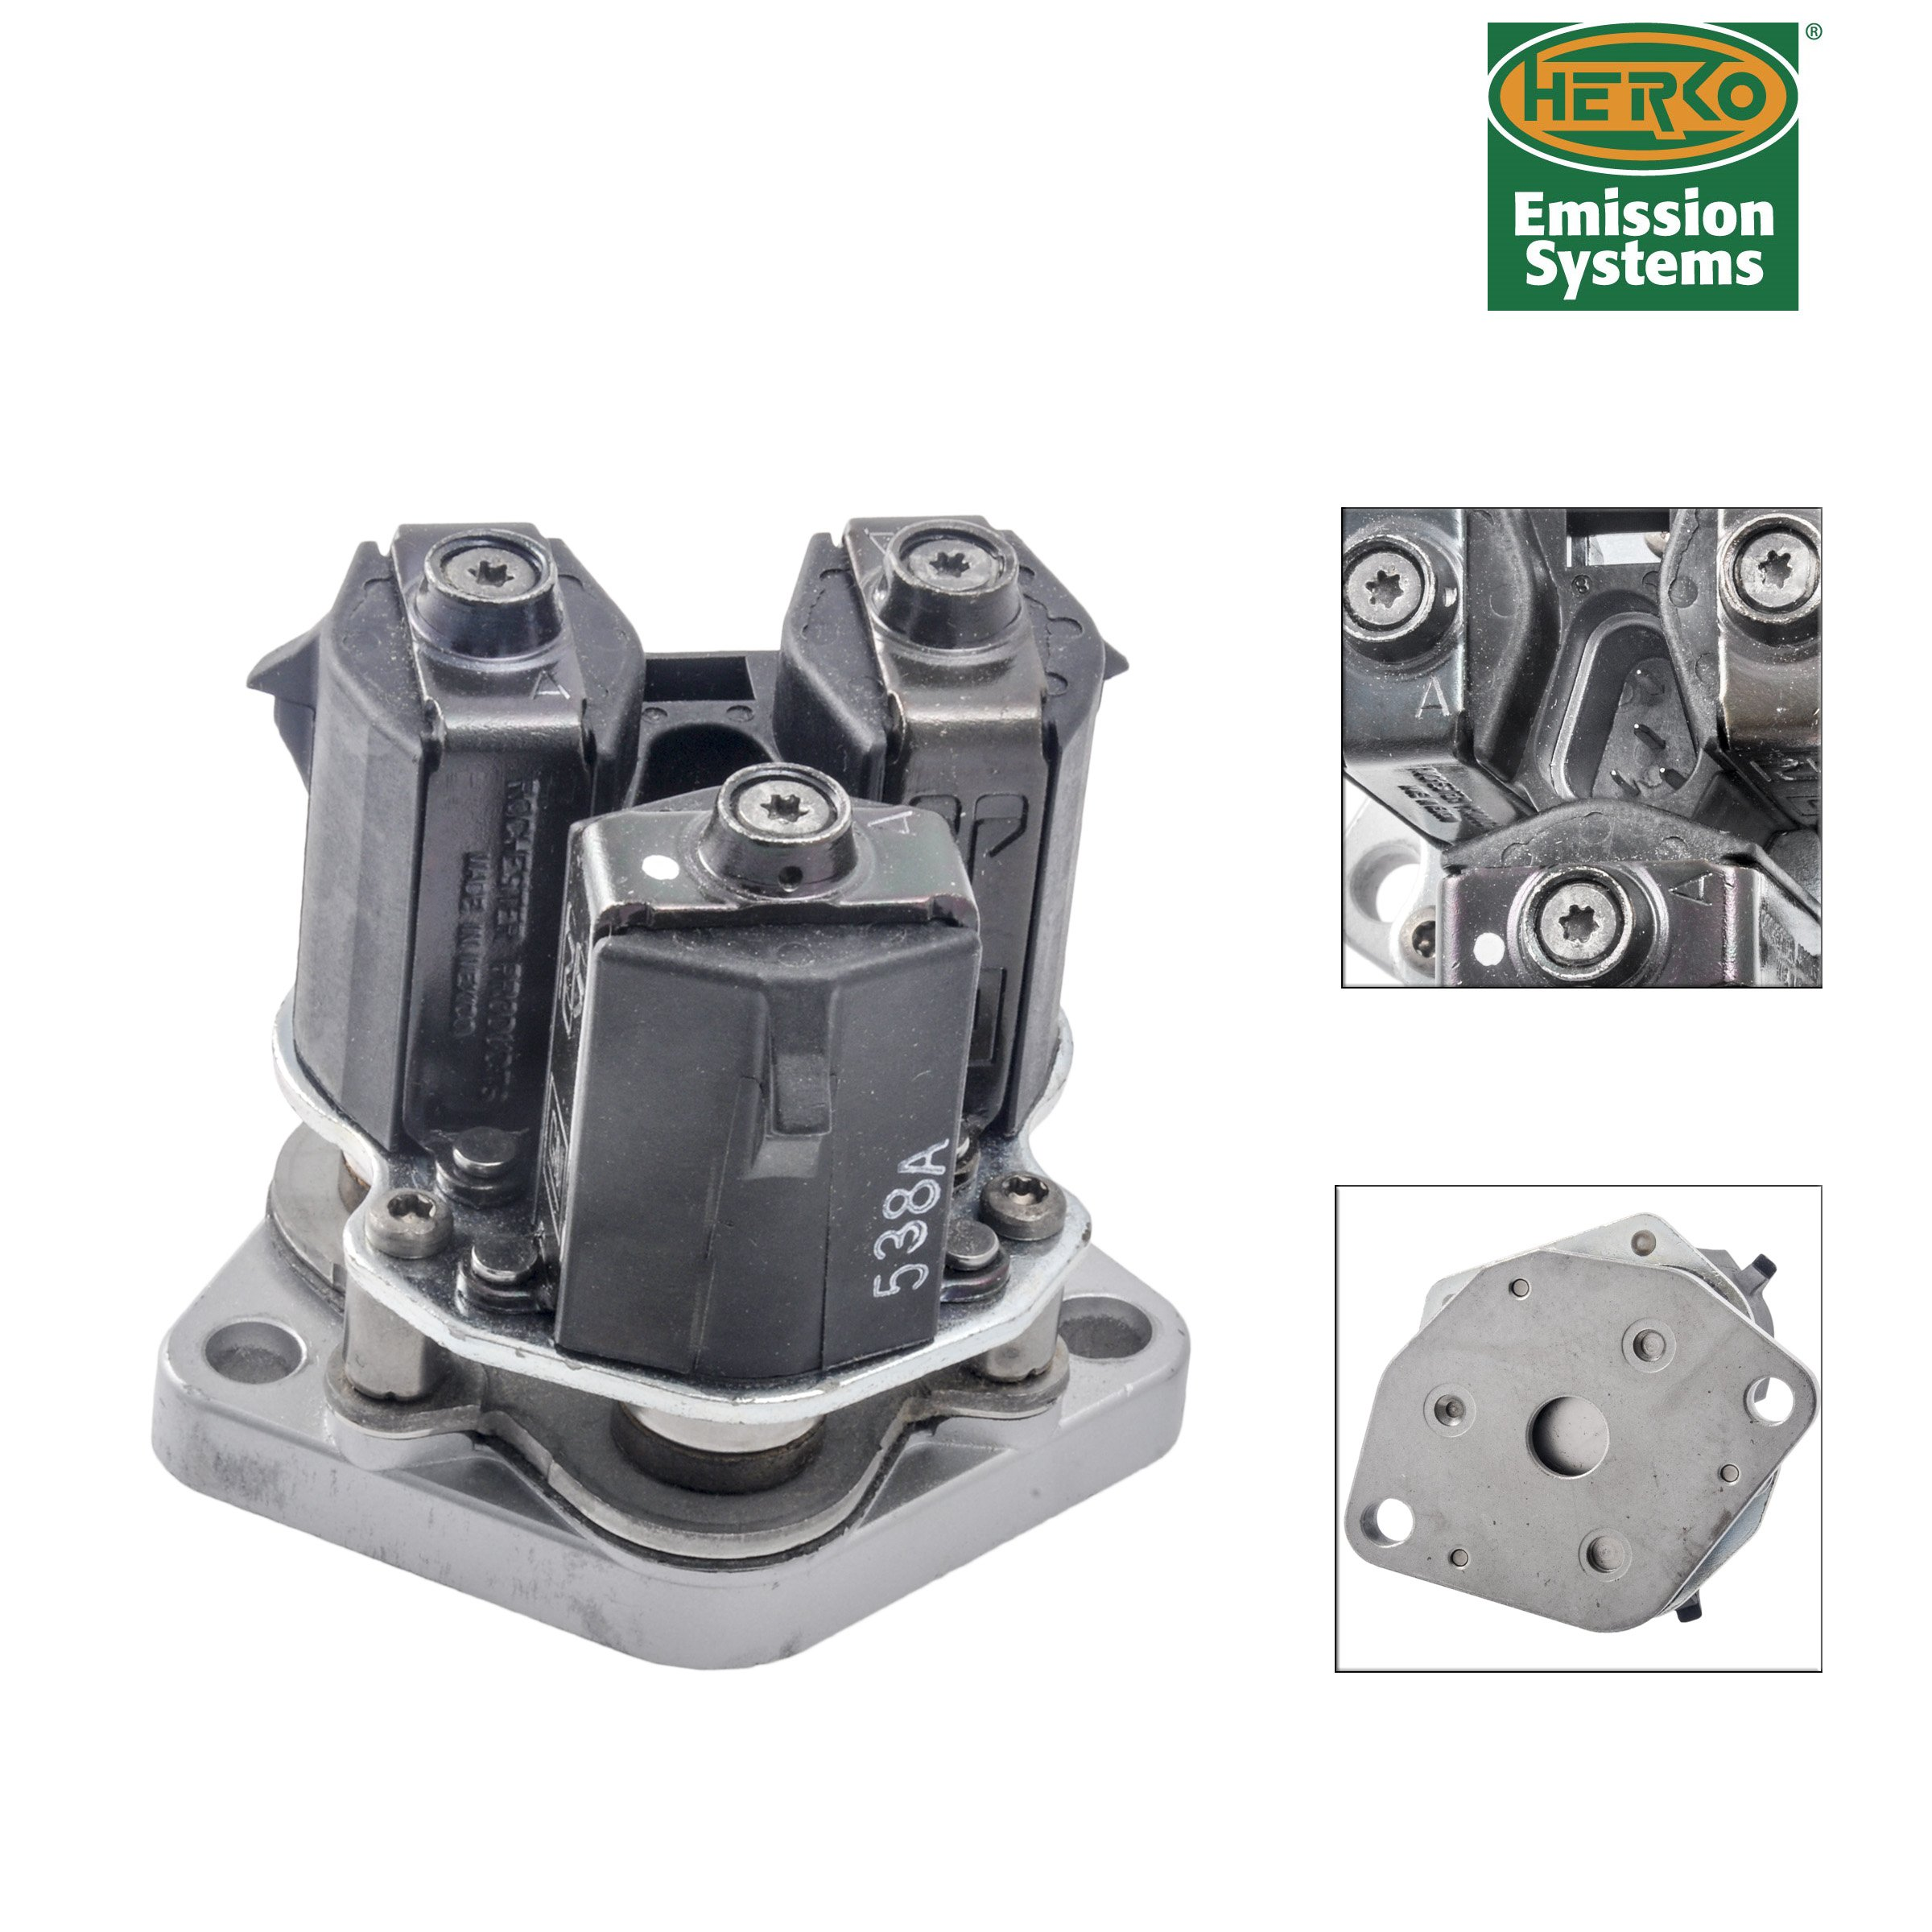 New Herko EGR Valve EGRV400 by Herko Automotive